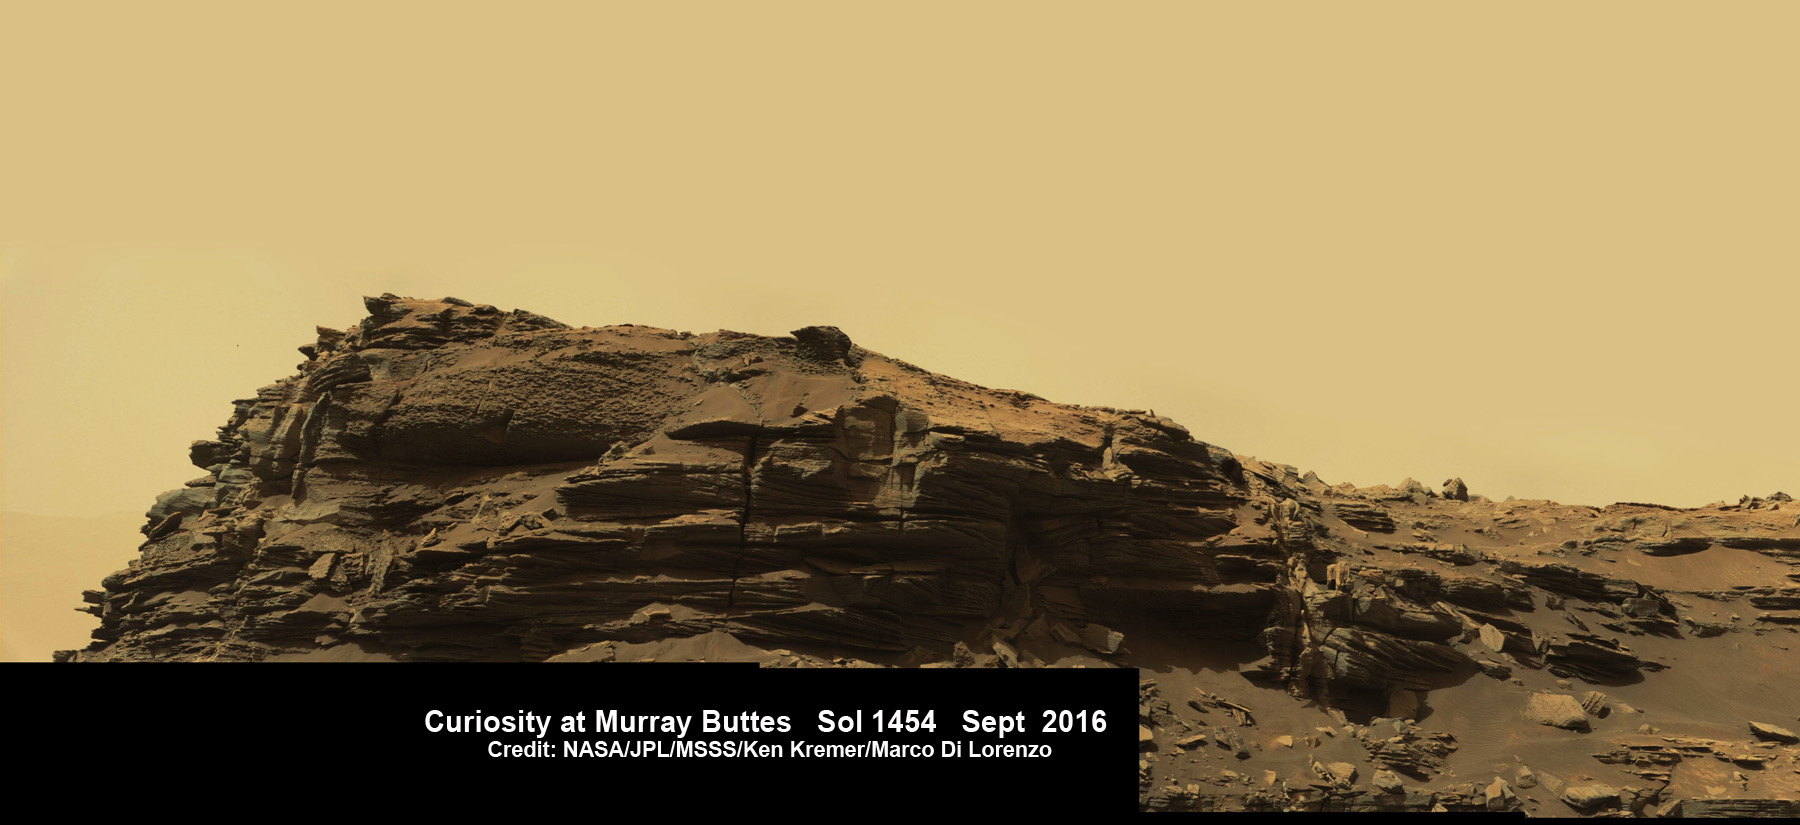 Dramatic closeup view of hillside outcrop with sandstone layers showing cross-bedding  in the Murray Buttes region on lower Mount Sharp from the Mast Camera (Mastcam) on NASA's Curiosity Mars rover. This photo mosaic is stitched and cropped from Mastcam camera raw images taken on Sol 1454, Sept. 8, 2016, with added artificial sky.  Credit: NASA/JPL/MSSS/Ken Kremer/kenkremer.com/Marco Di Lorenzo